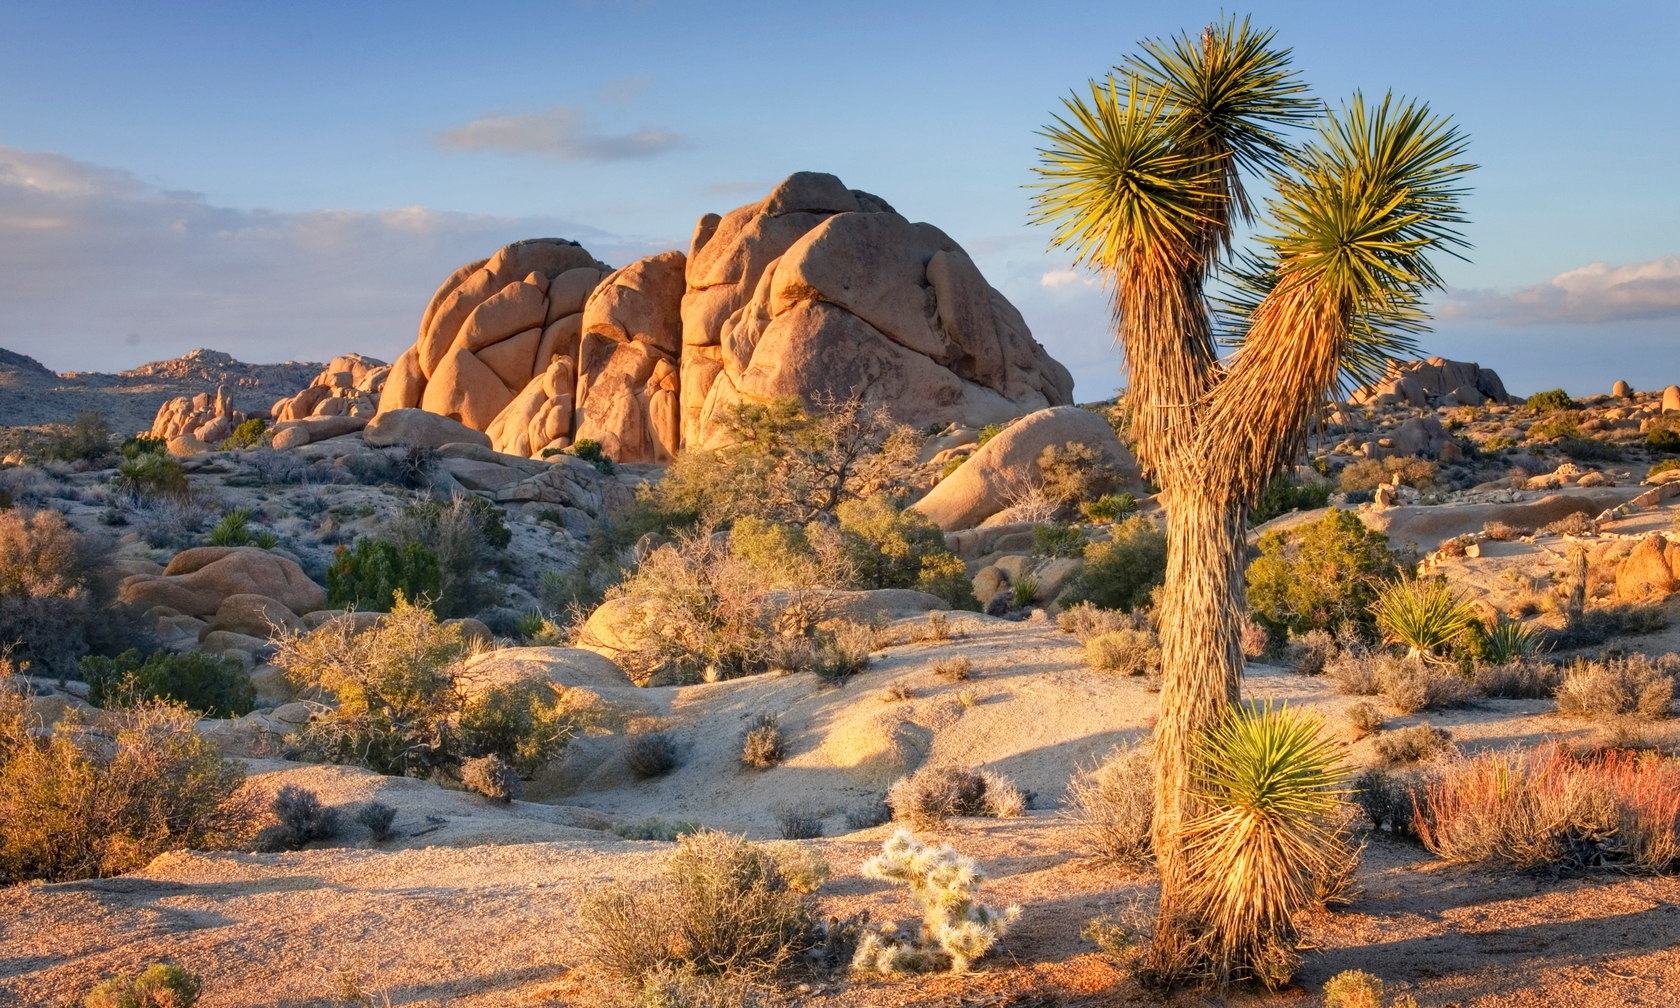 Vacation rentals in Joshua Tree